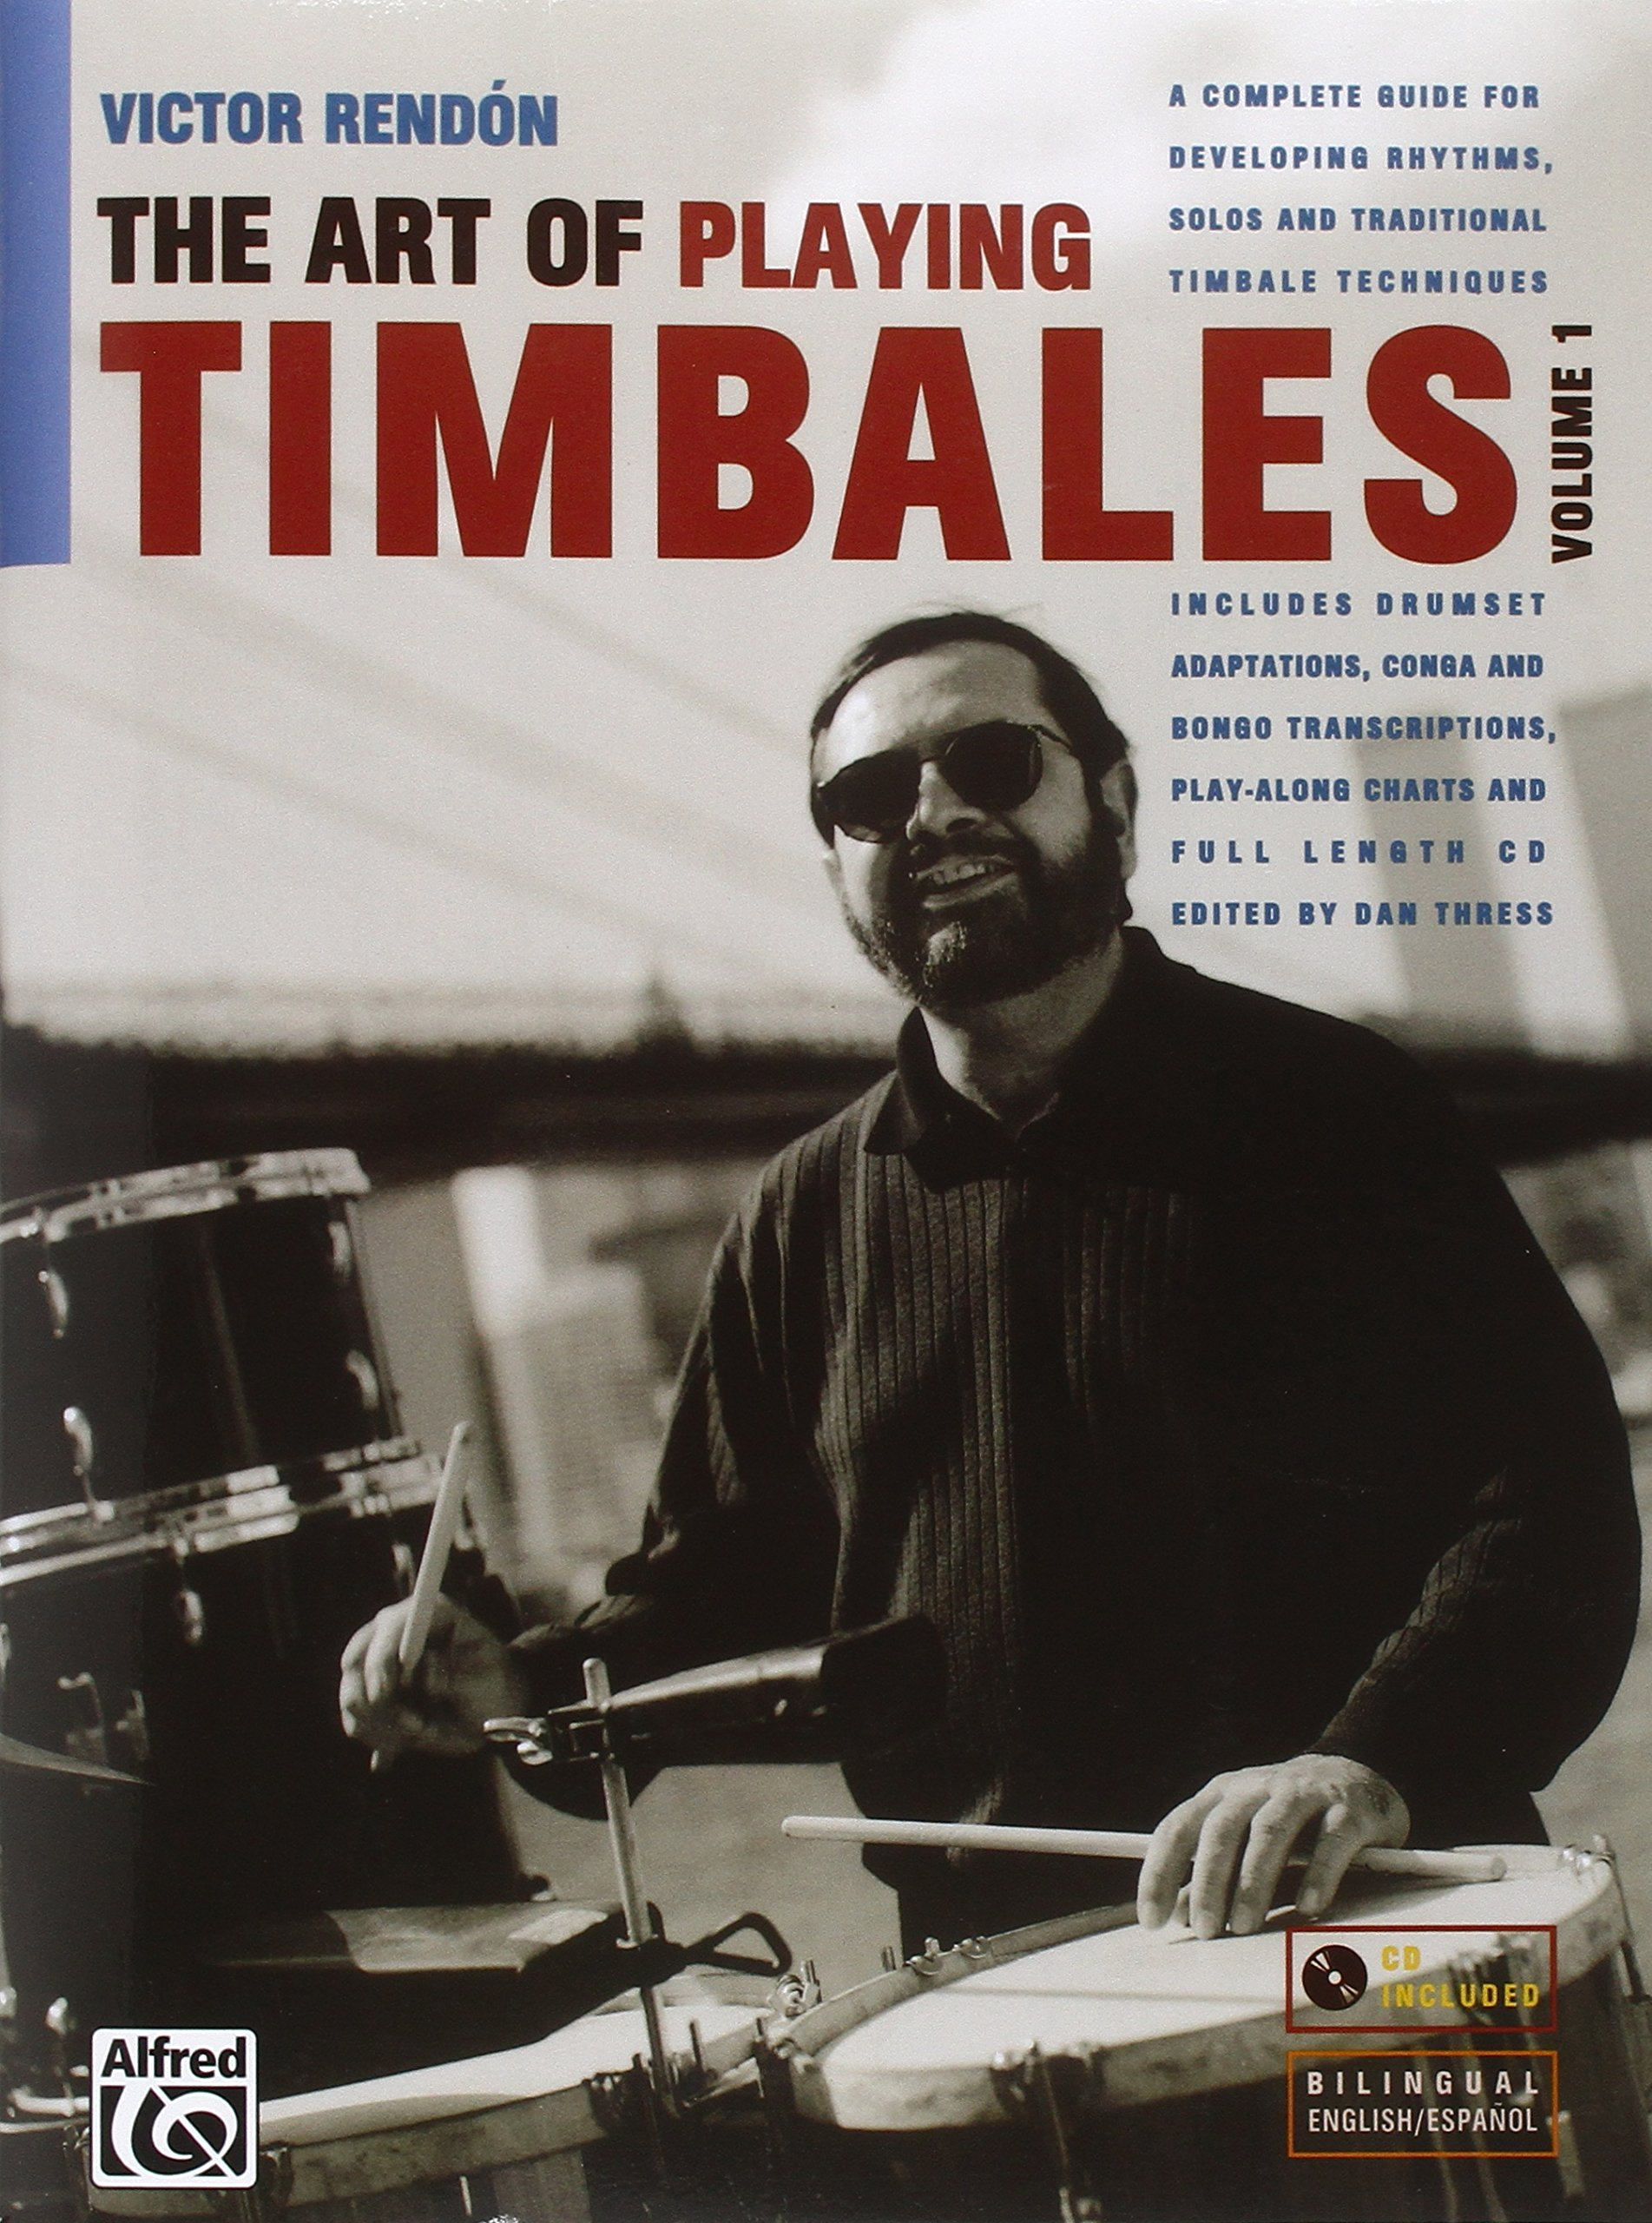 The Art of Playing Timbales, Vol. 1 pdf